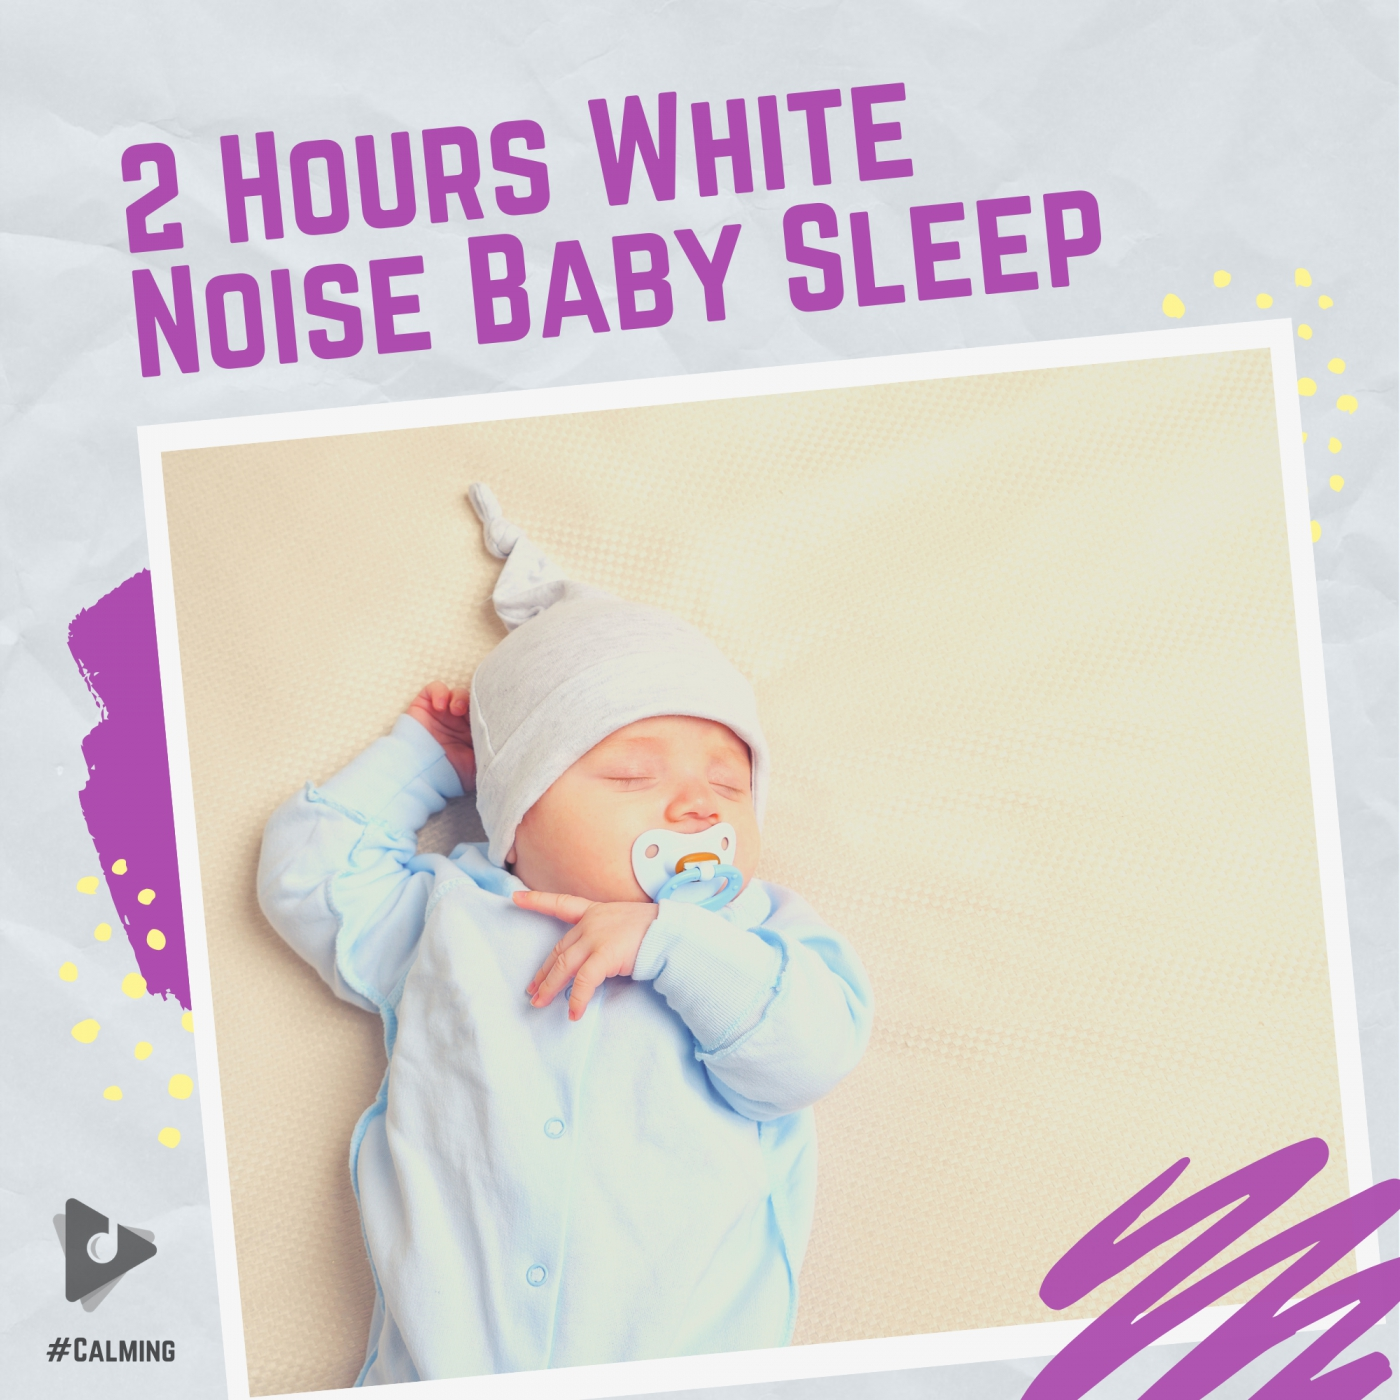 2 Hours White Noise Baby Sleep